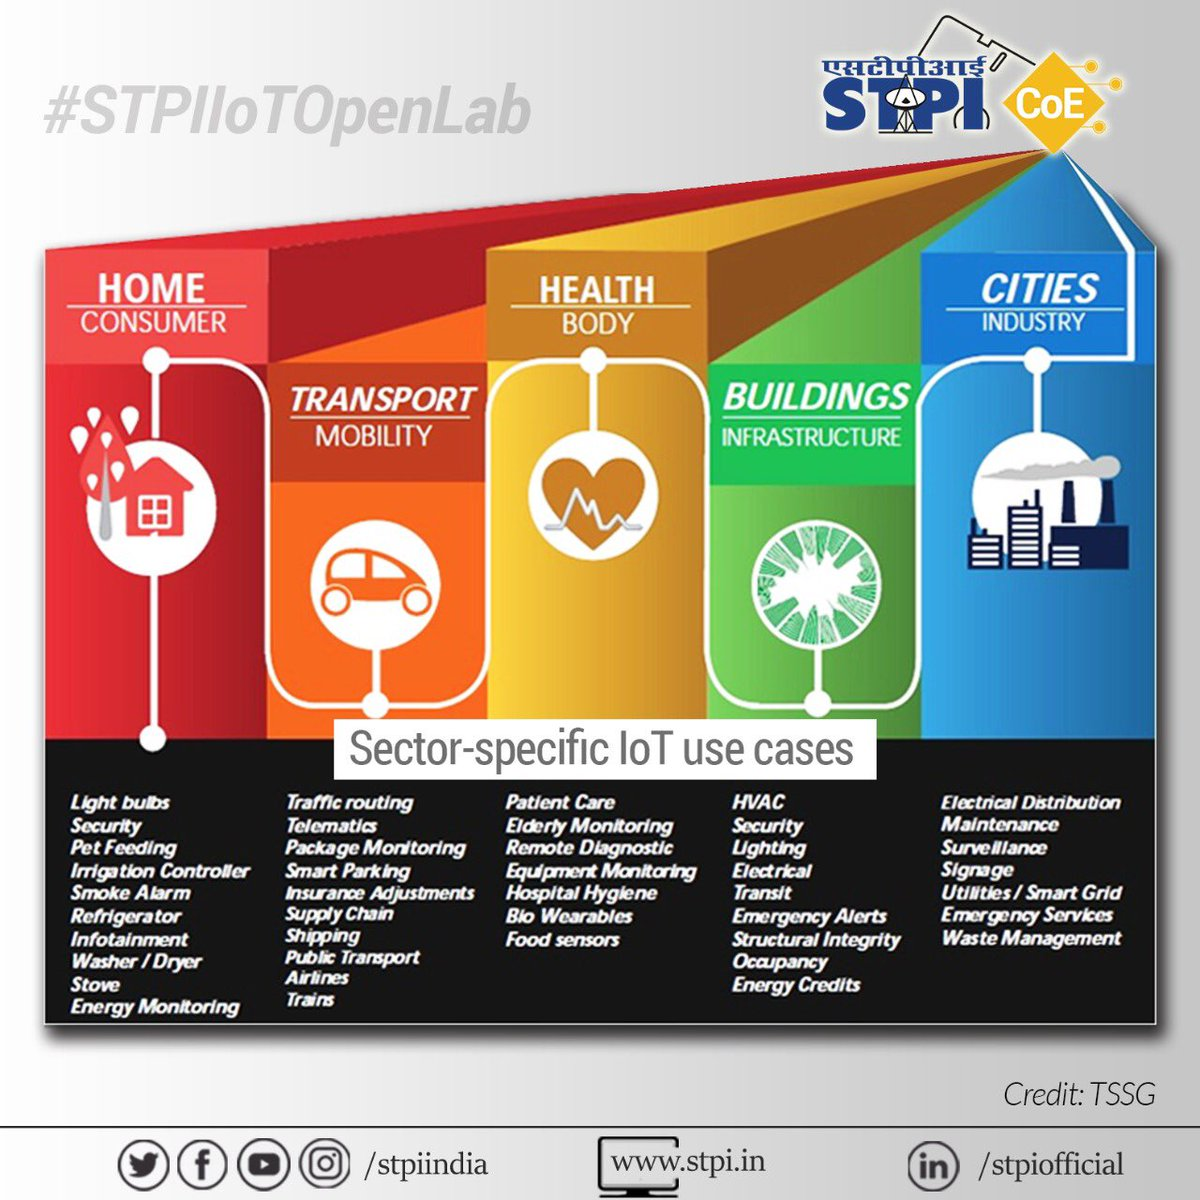 #IoT is getting ubiquitous in the digital ecosystem with its wide-ranging applications across sectors. #STPIIoTOpenLab is poised to disrupt the entrepreneurial growth in this domain by nurturing #startups while focusing on #RnD, #innovation & #IPR creation. #STPICoEs @Omkar_Raii<br>http://pic.twitter.com/0UsPu1X9ad